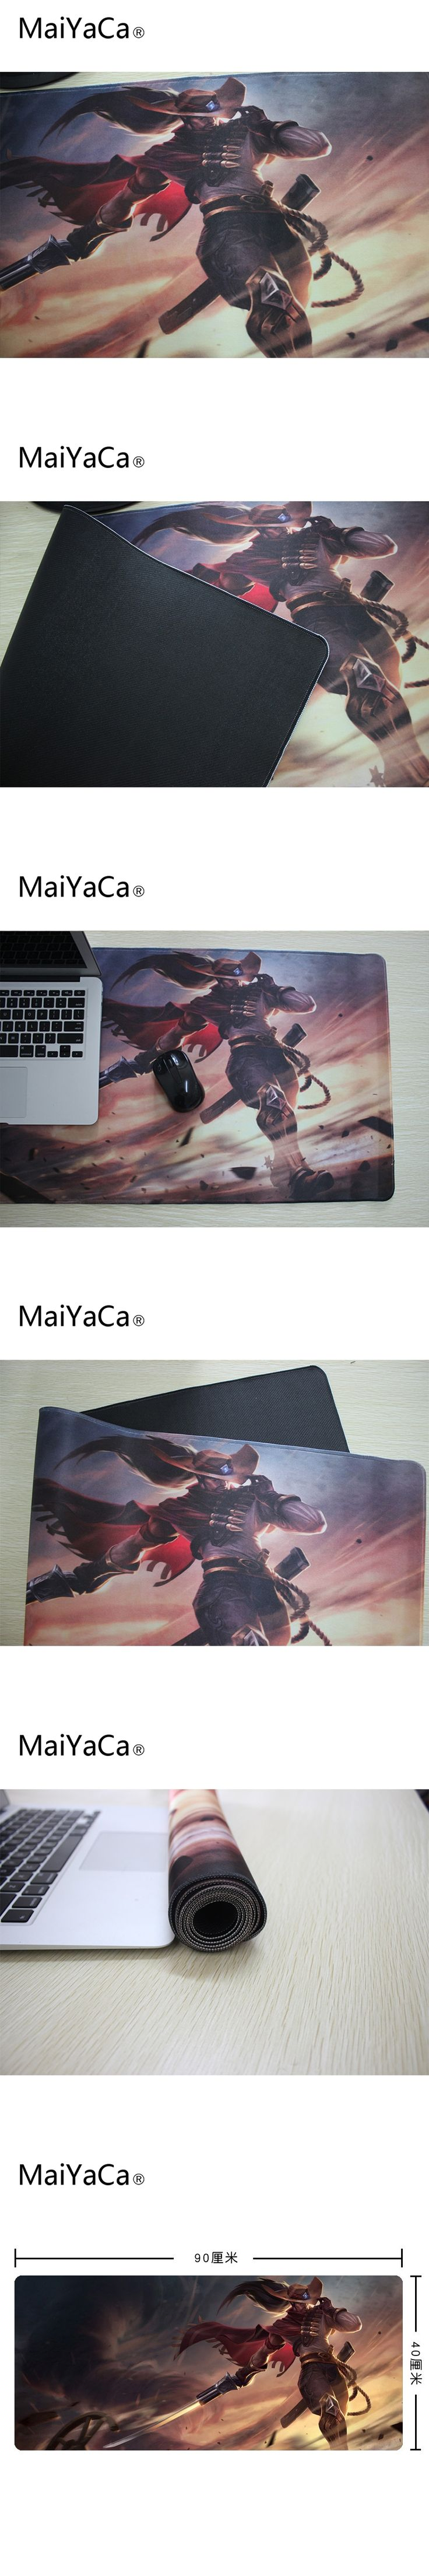 MSI mouse pads 70x30cm pad to mouse notbook computer mousepad best seller gaming mousepad gamer to keyboard laptop mouse mat